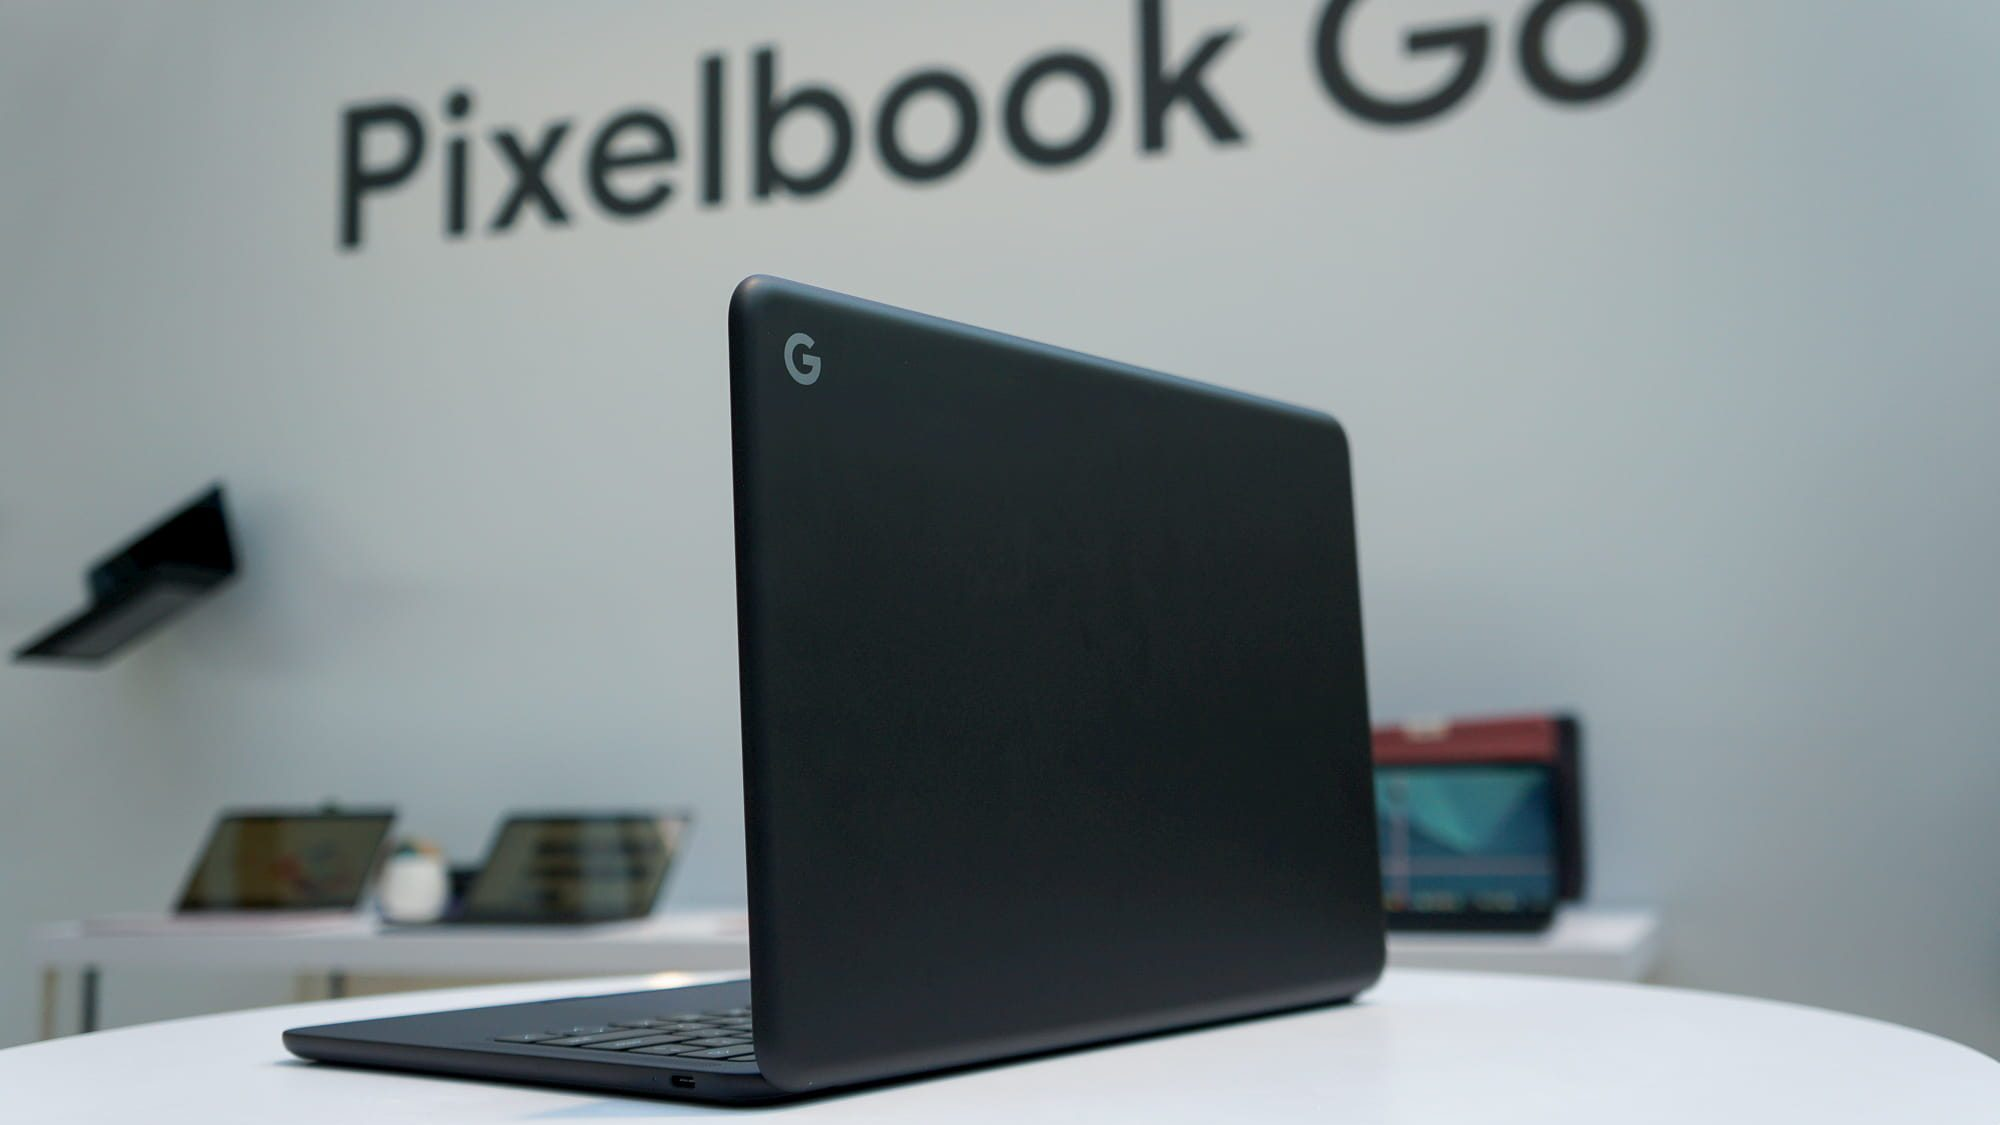 Pixelbook Go hands-on and initial impressions [VIDEO]